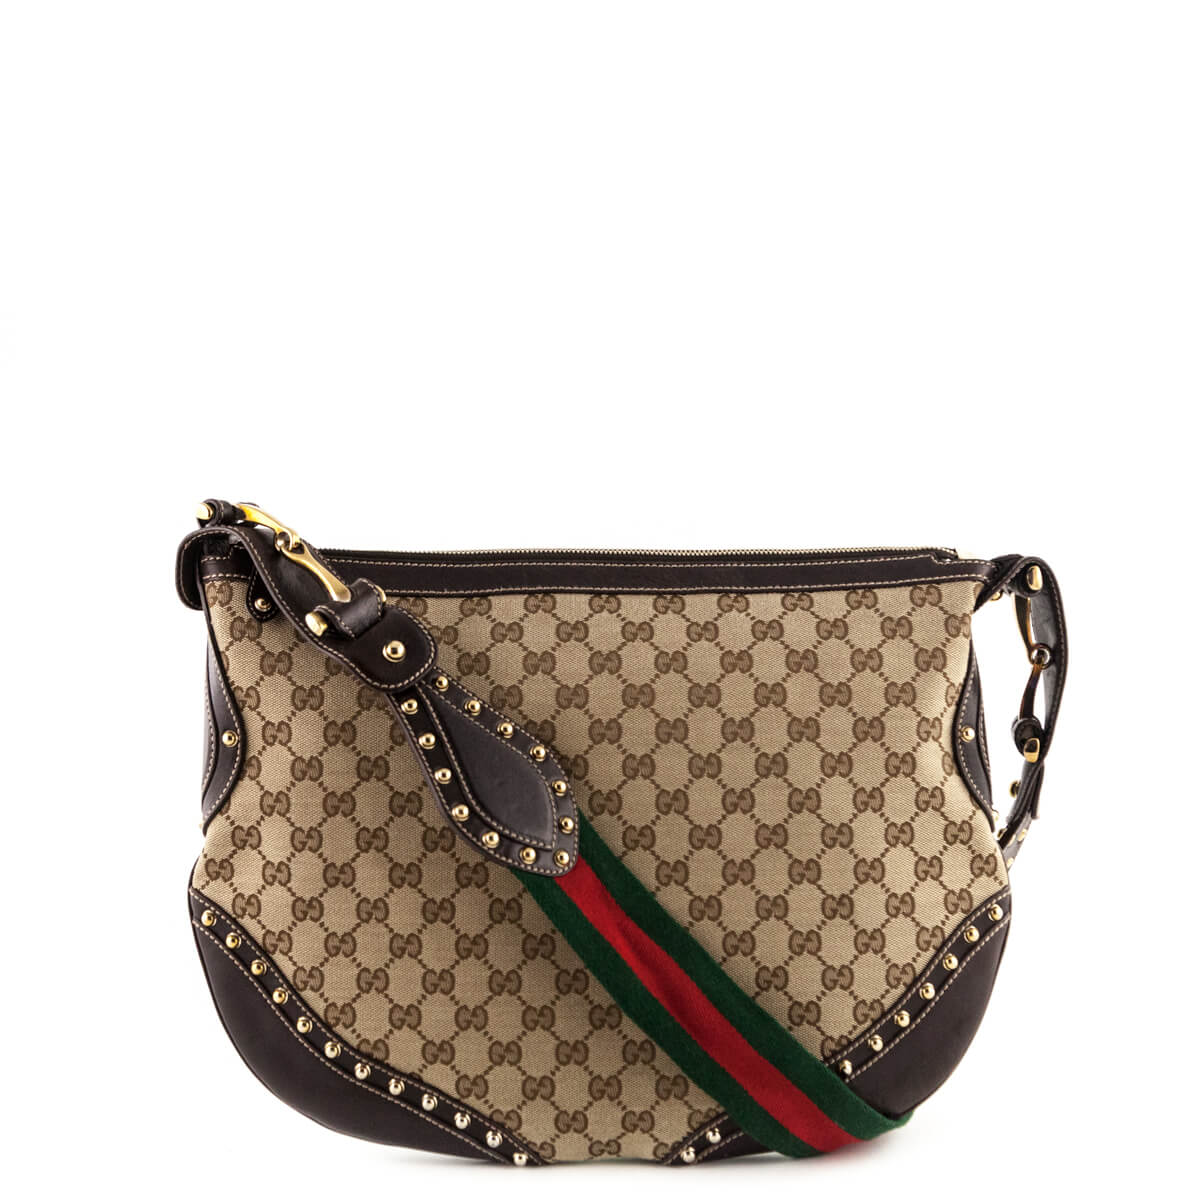 960a8de7f70 Gucci GG Canvas Pelham Studded Hobo Bag - LOVE that BAG - Preowned  Authentic Designer Handbags ...